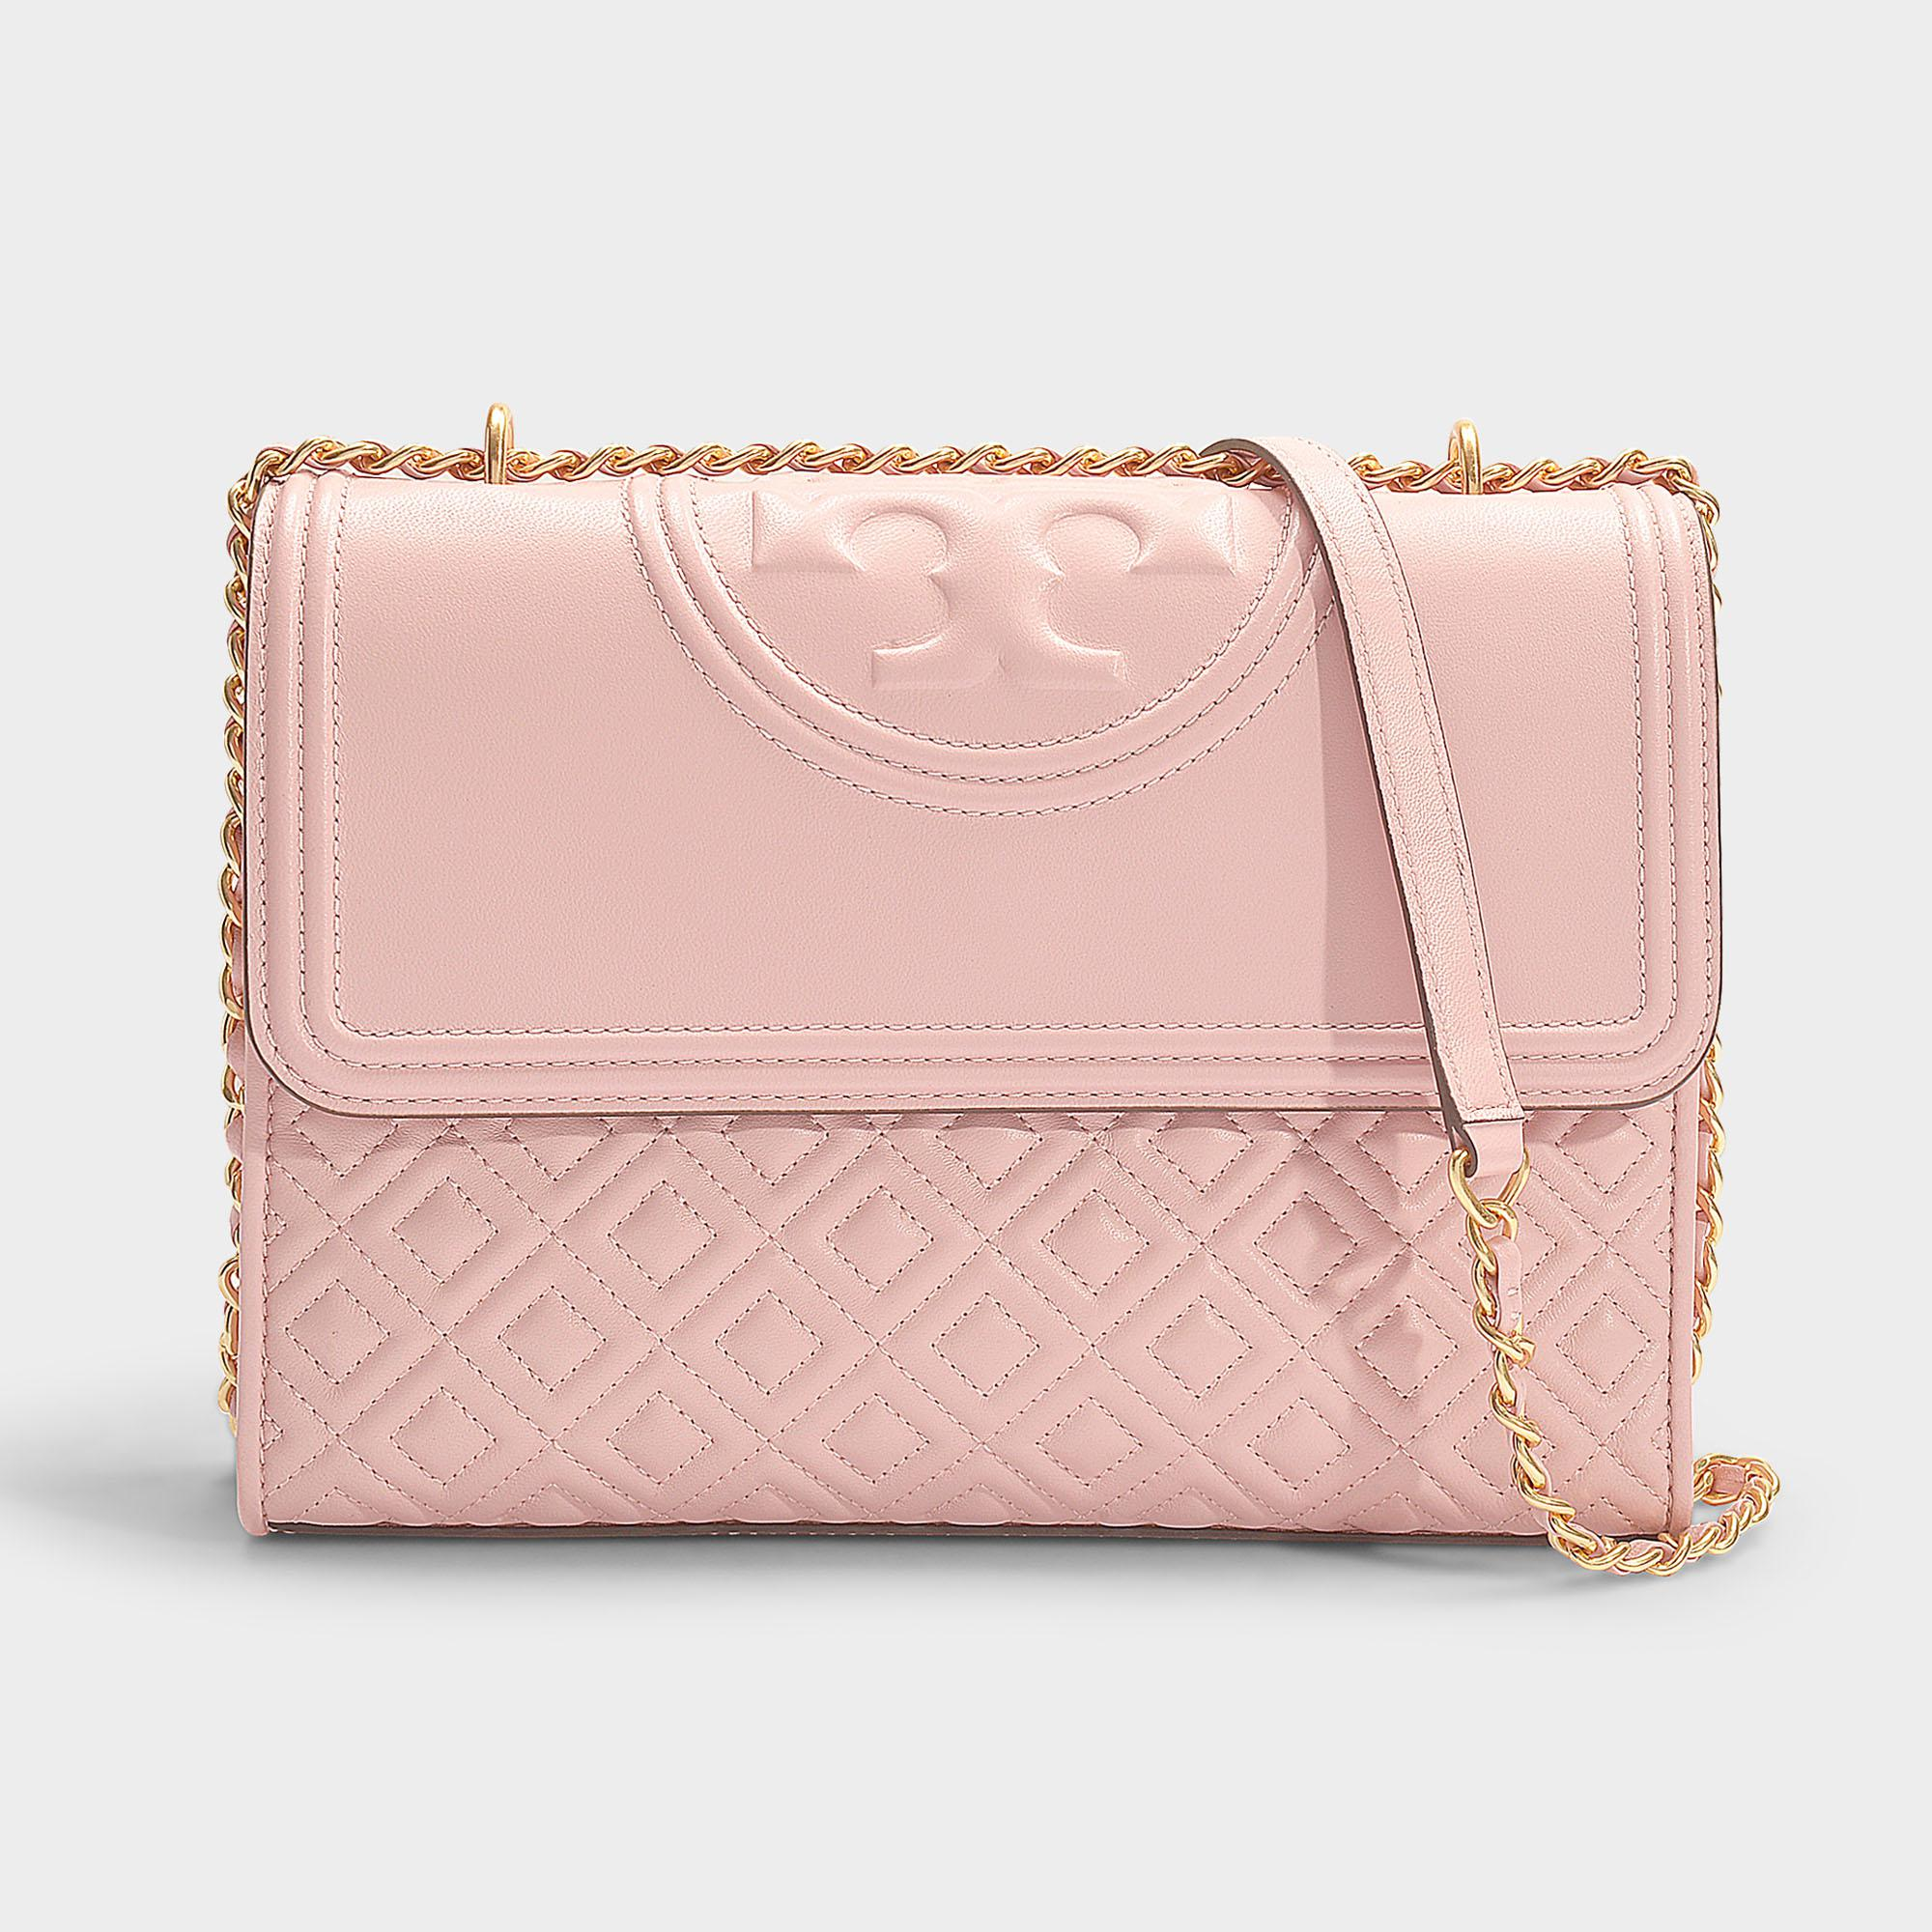 e6f9818c564 Lyst - Tory Burch Fleming Convertible Shoulder Bag In Shell Pink ...